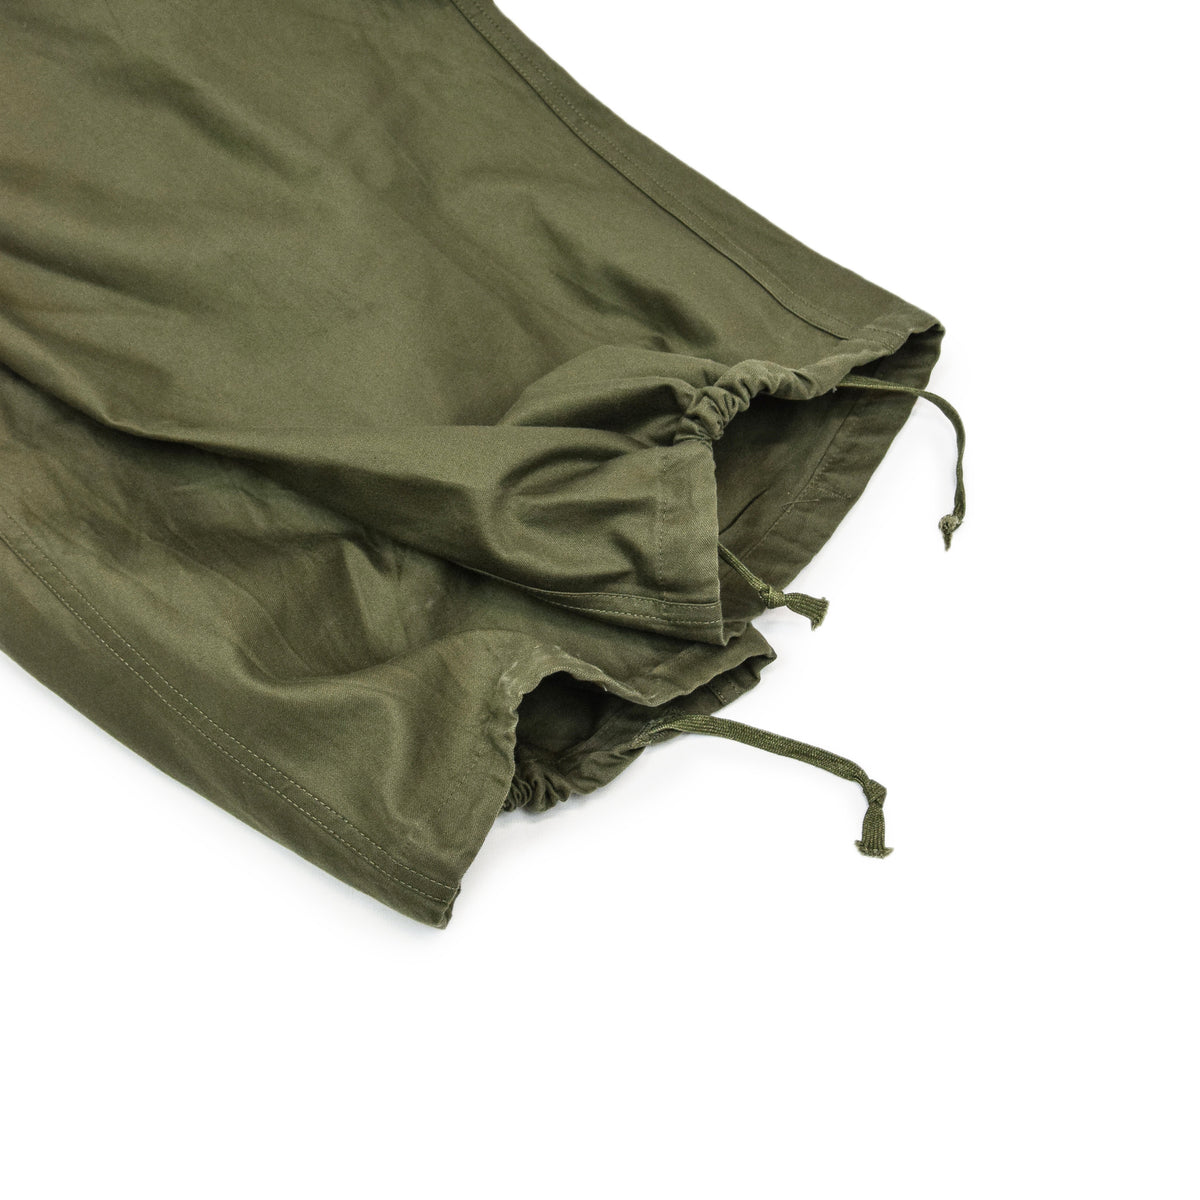 Vintage 50s US Army M-1951 Cotton Sateen OG-107 Shell Field Trousers M Reg DRAWSTRINGS